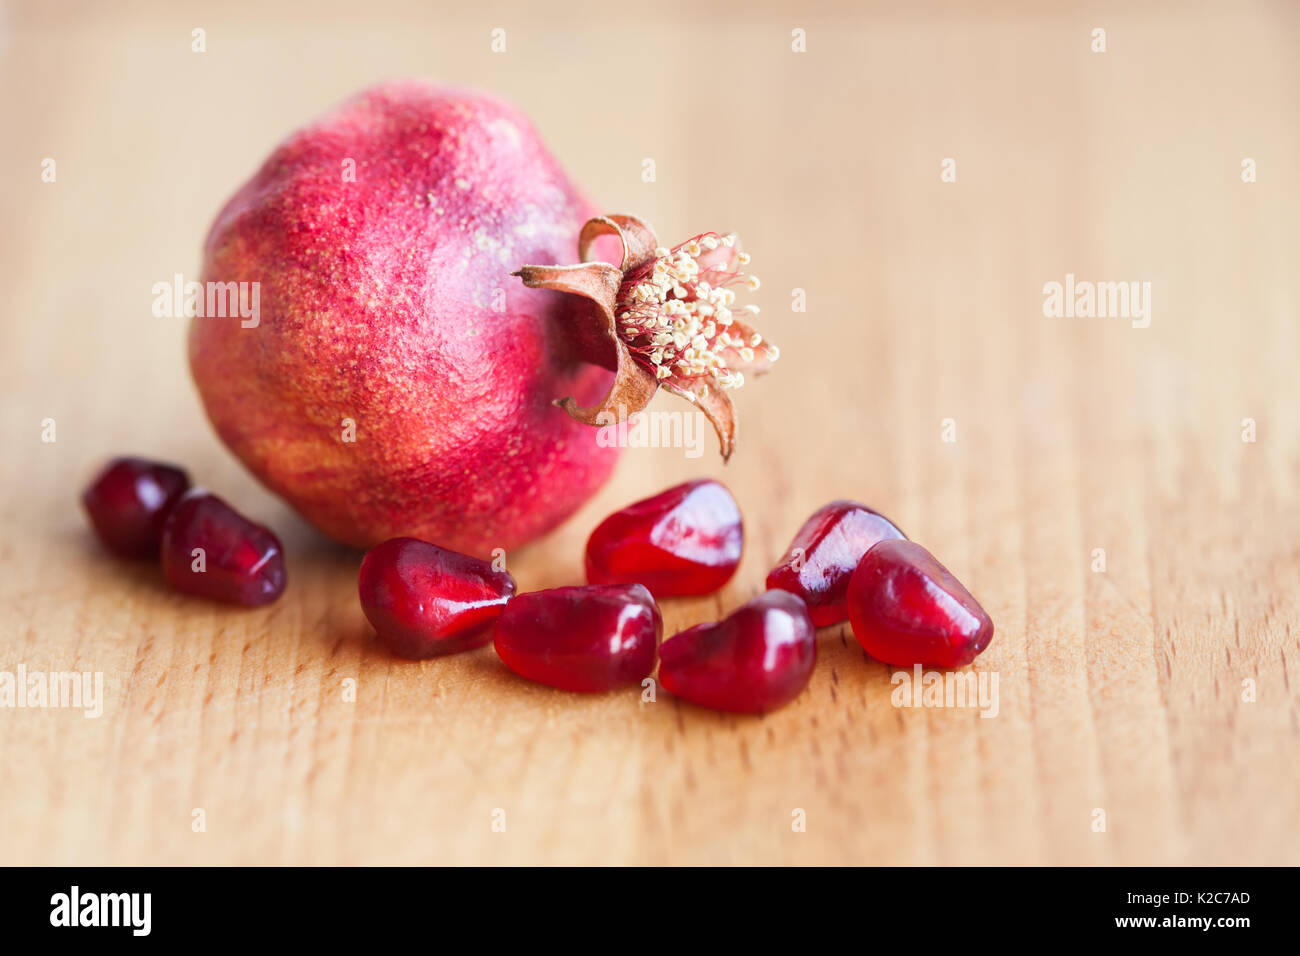 Pomegranate with seeds on wooden background. shallow depth of field - Stock Image